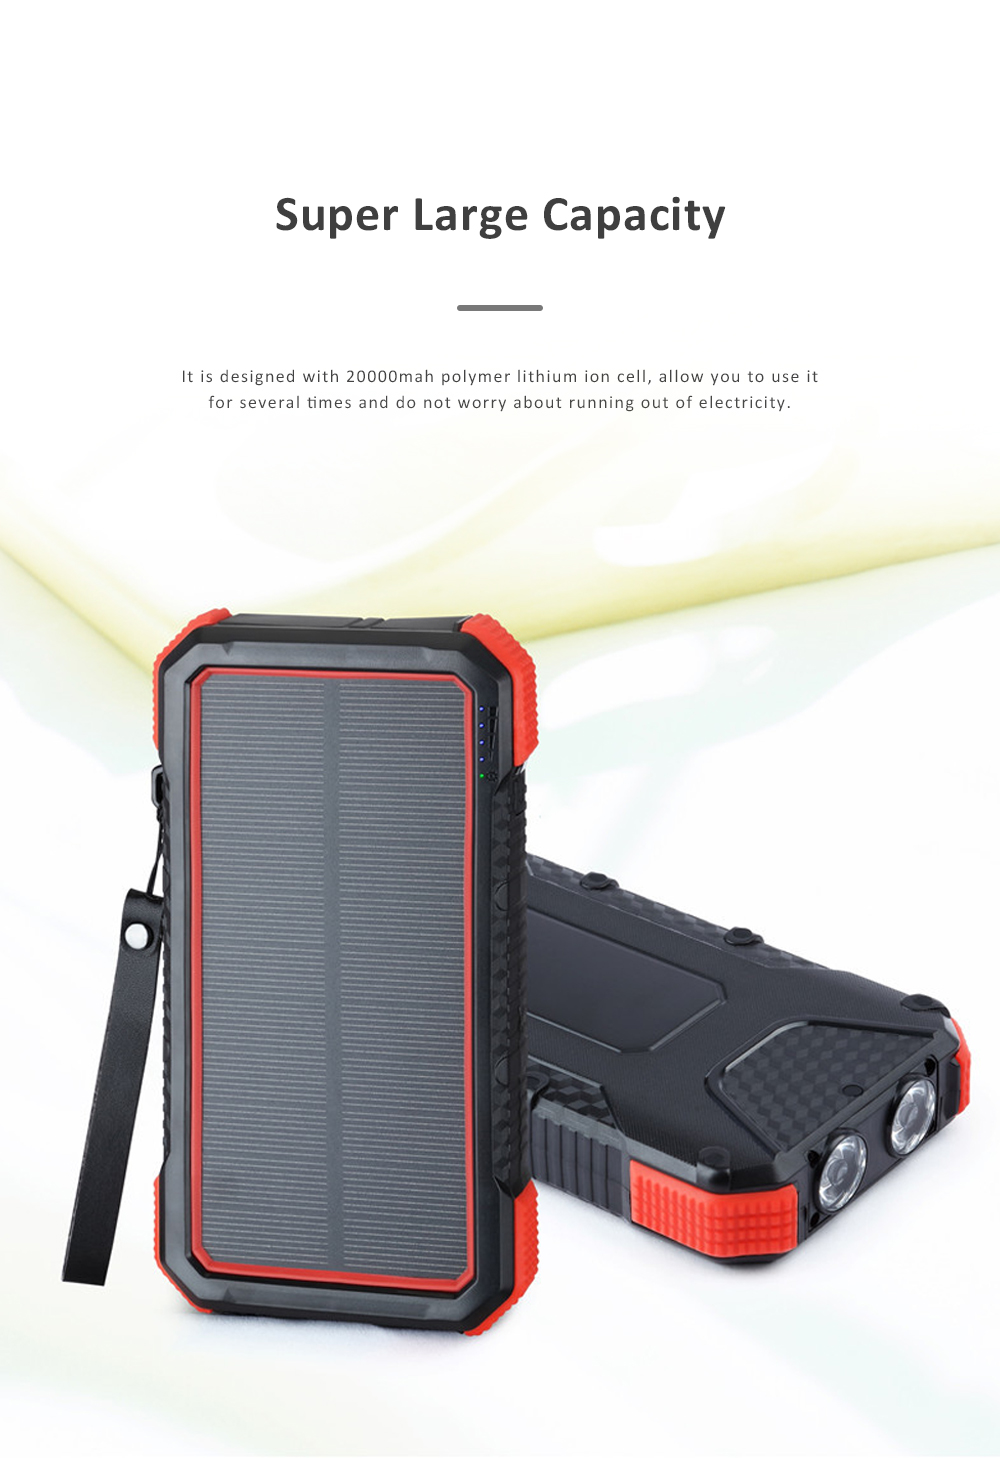 Solar Power Bank Chargers 20000mAh Portable Solar Power Bank Phone Charger with Two Type-C Port and Handle String 1